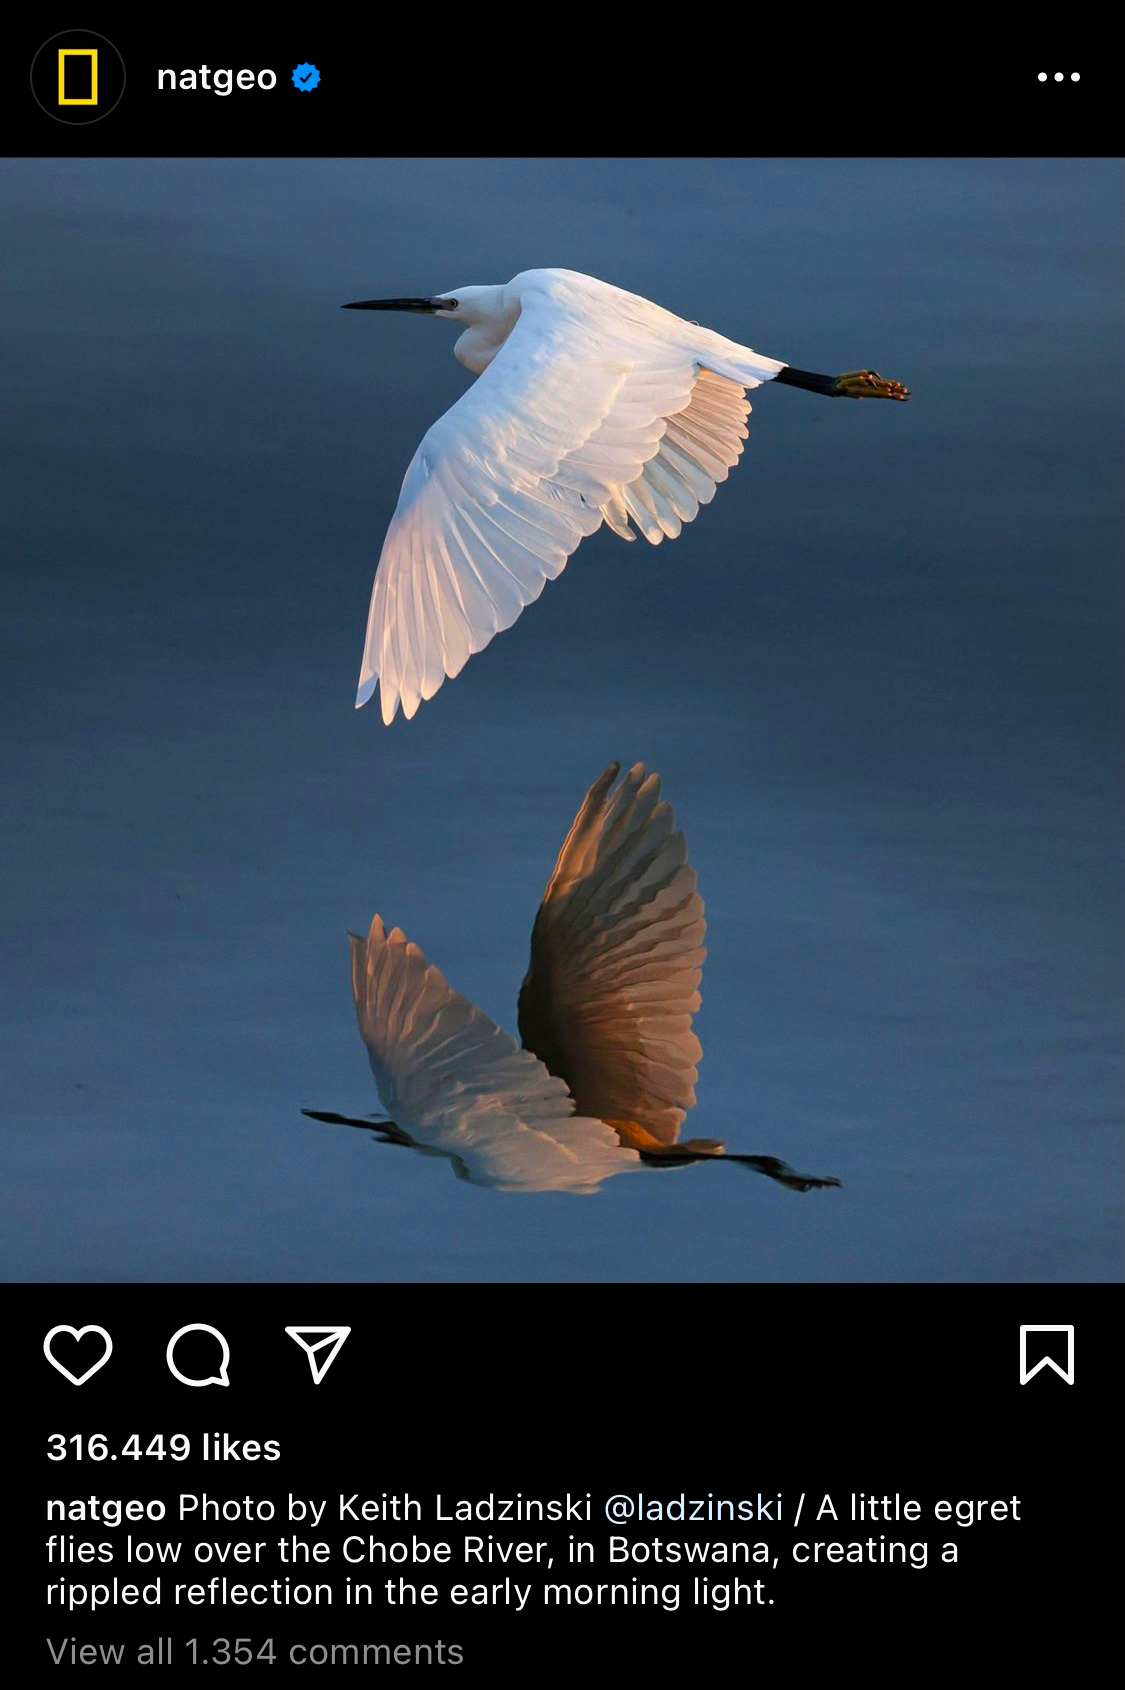 To optimize your content with the ideal Instagram image size for the square format, we suggest you follow 1080px x 1080px in size.